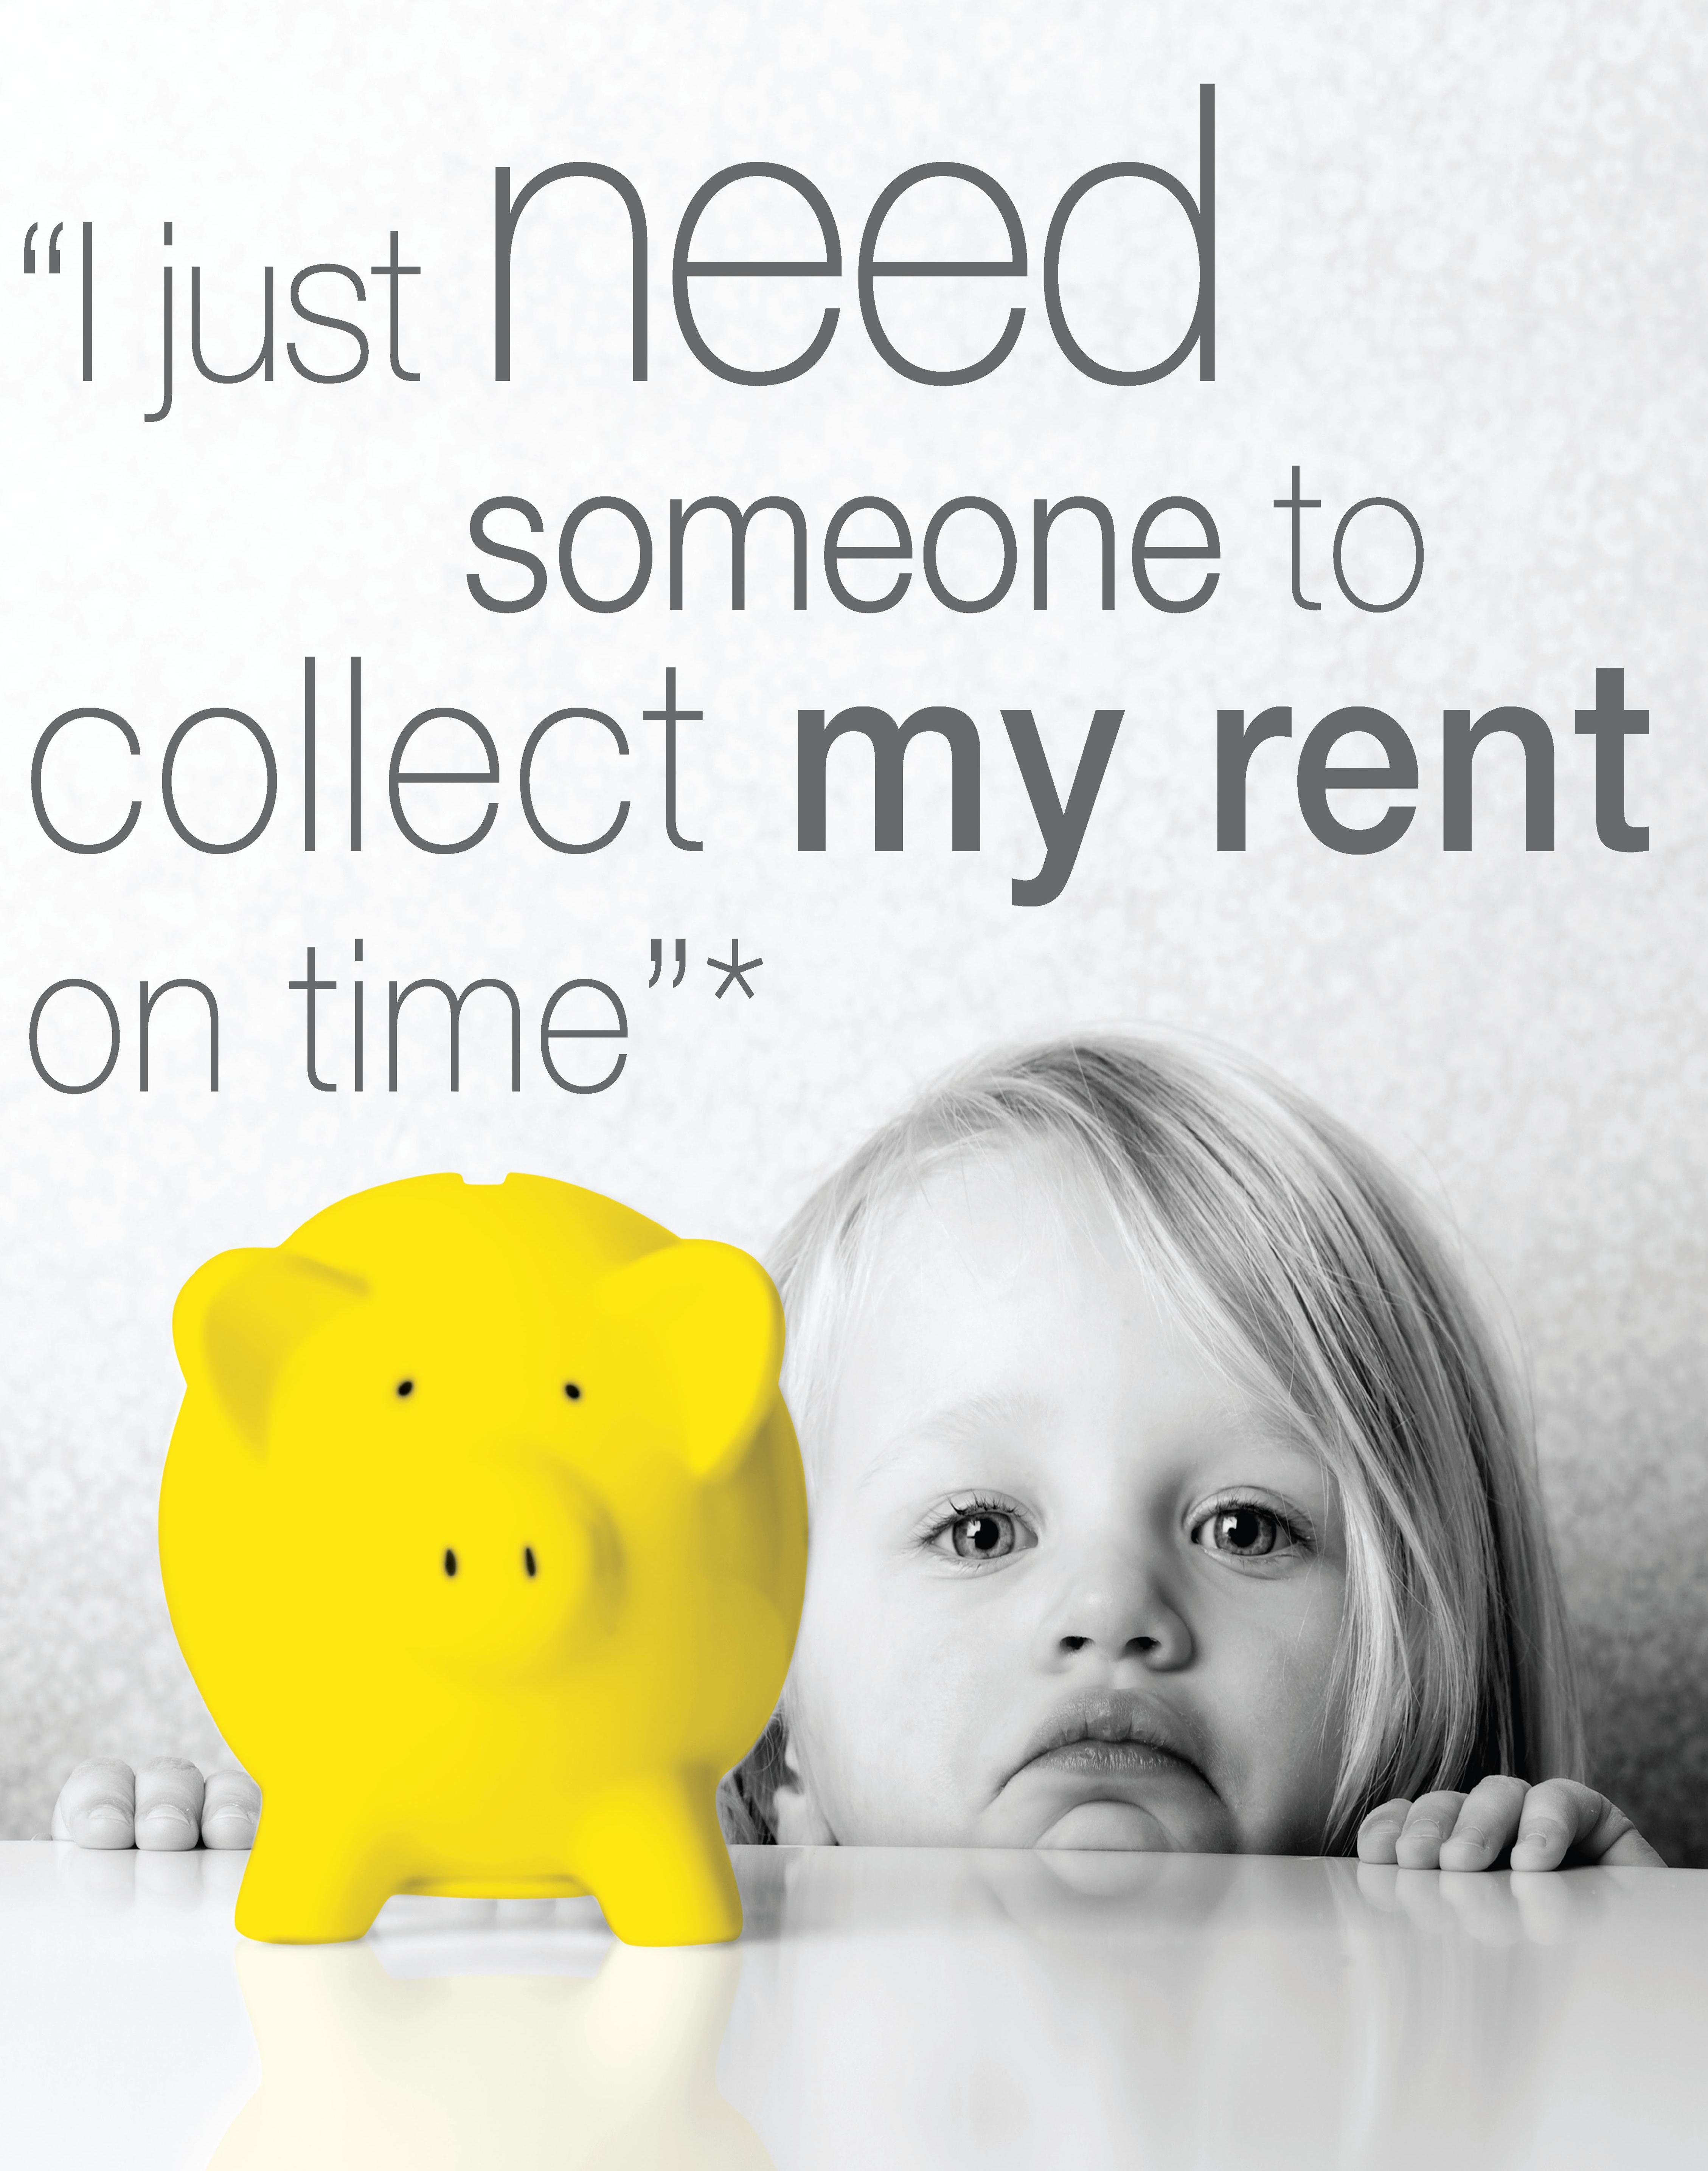 Collect-my-rent-on-time